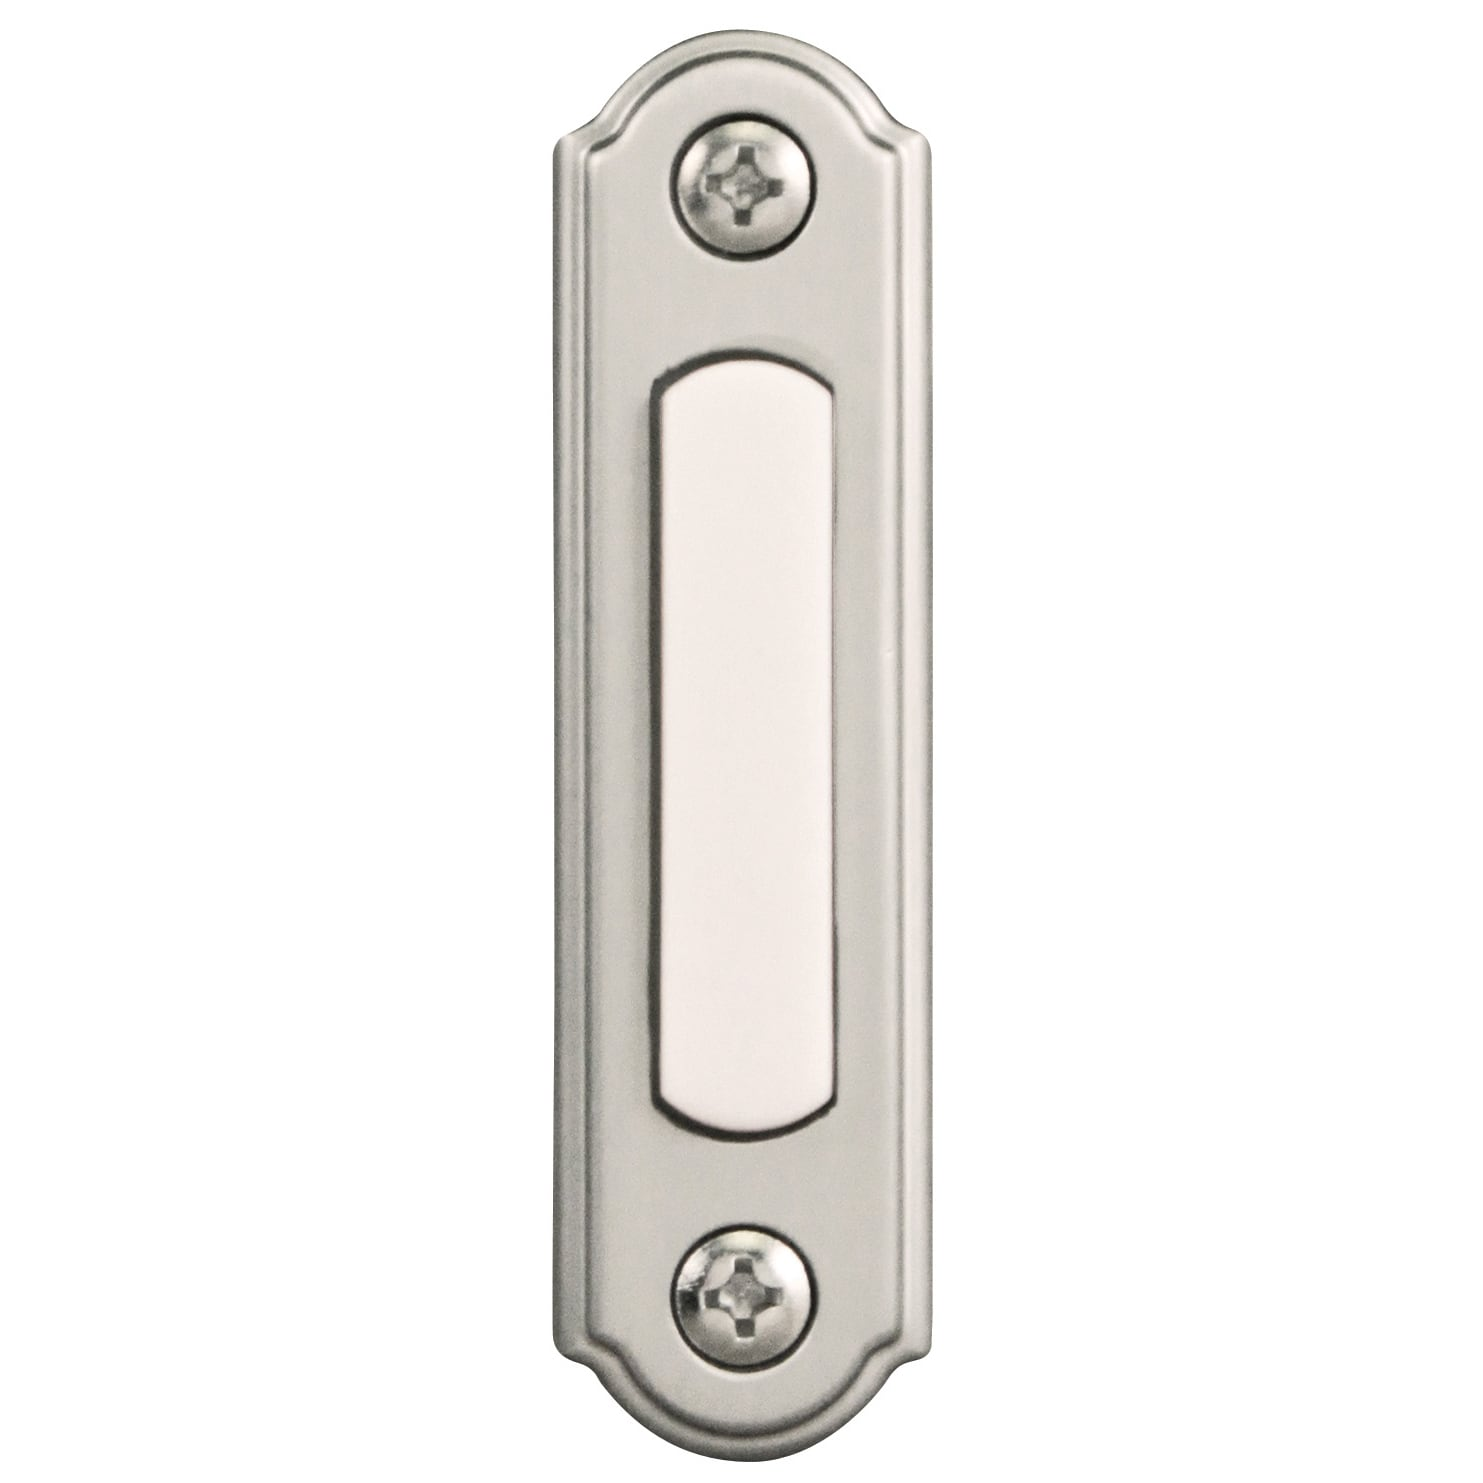 HeathCo Heath Zenith Satin Nickel Wired Pushbutton Doorbe...